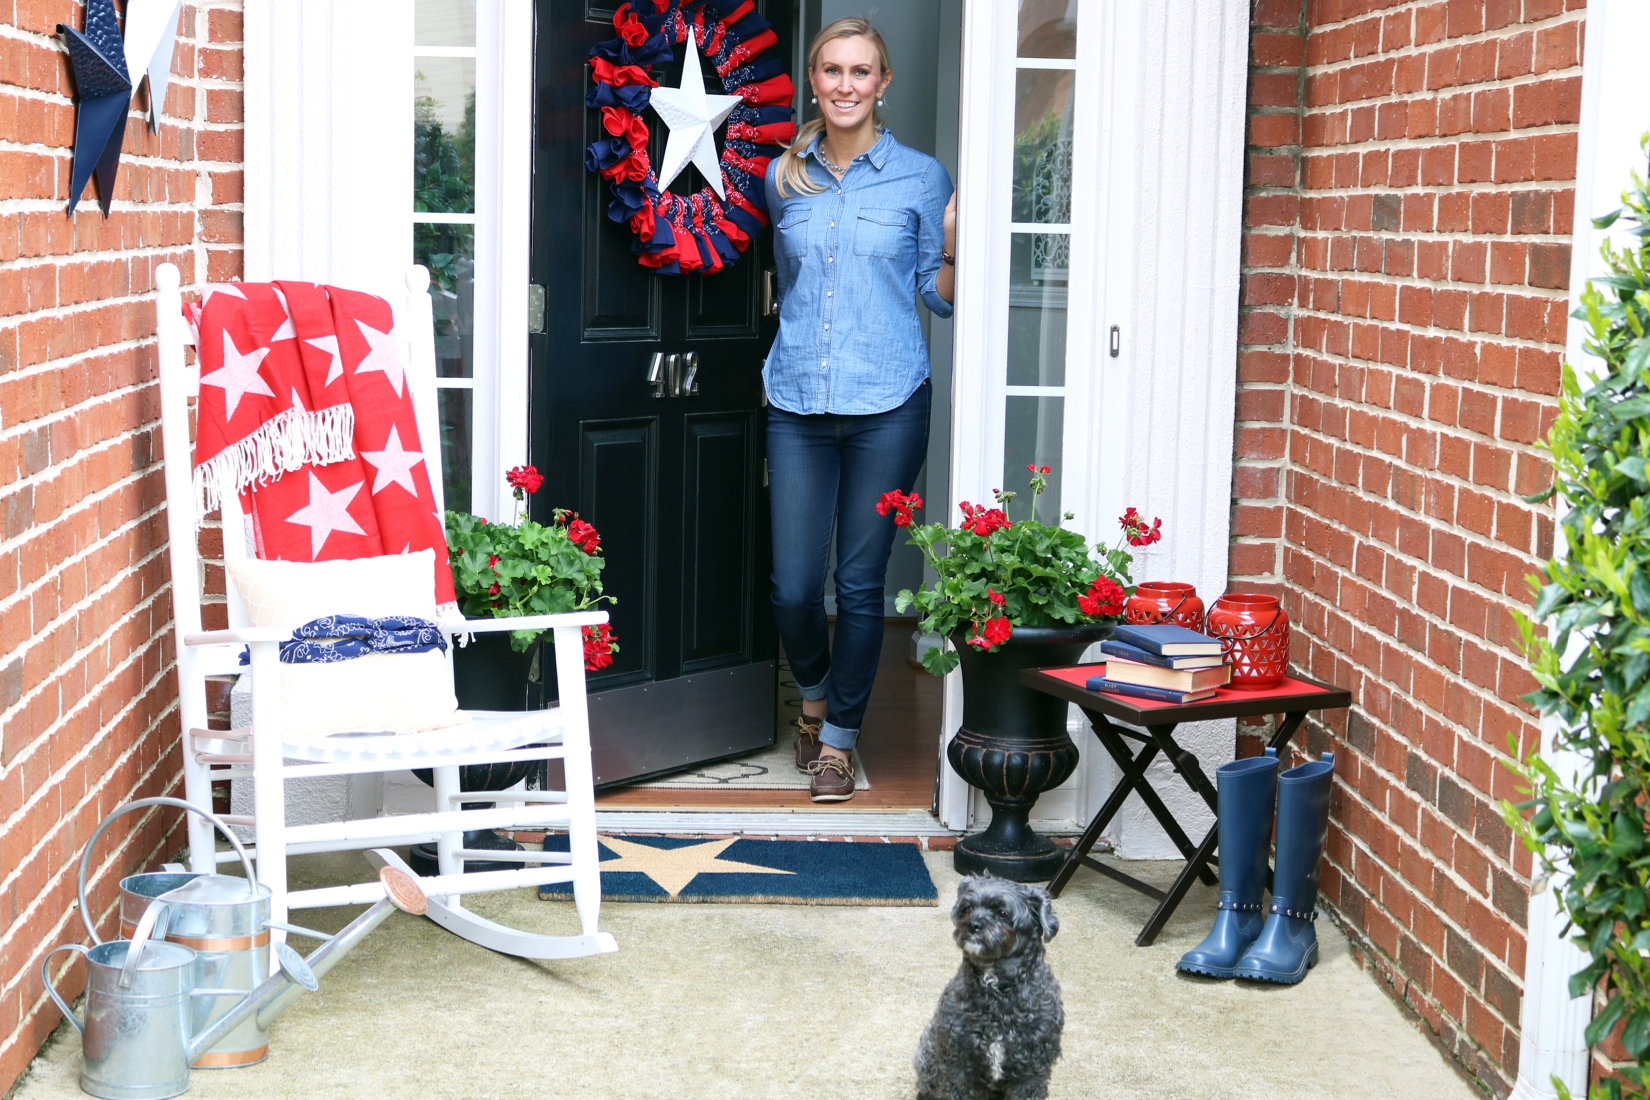 4th-of-july-front-door-decorations-allison-cawley-1